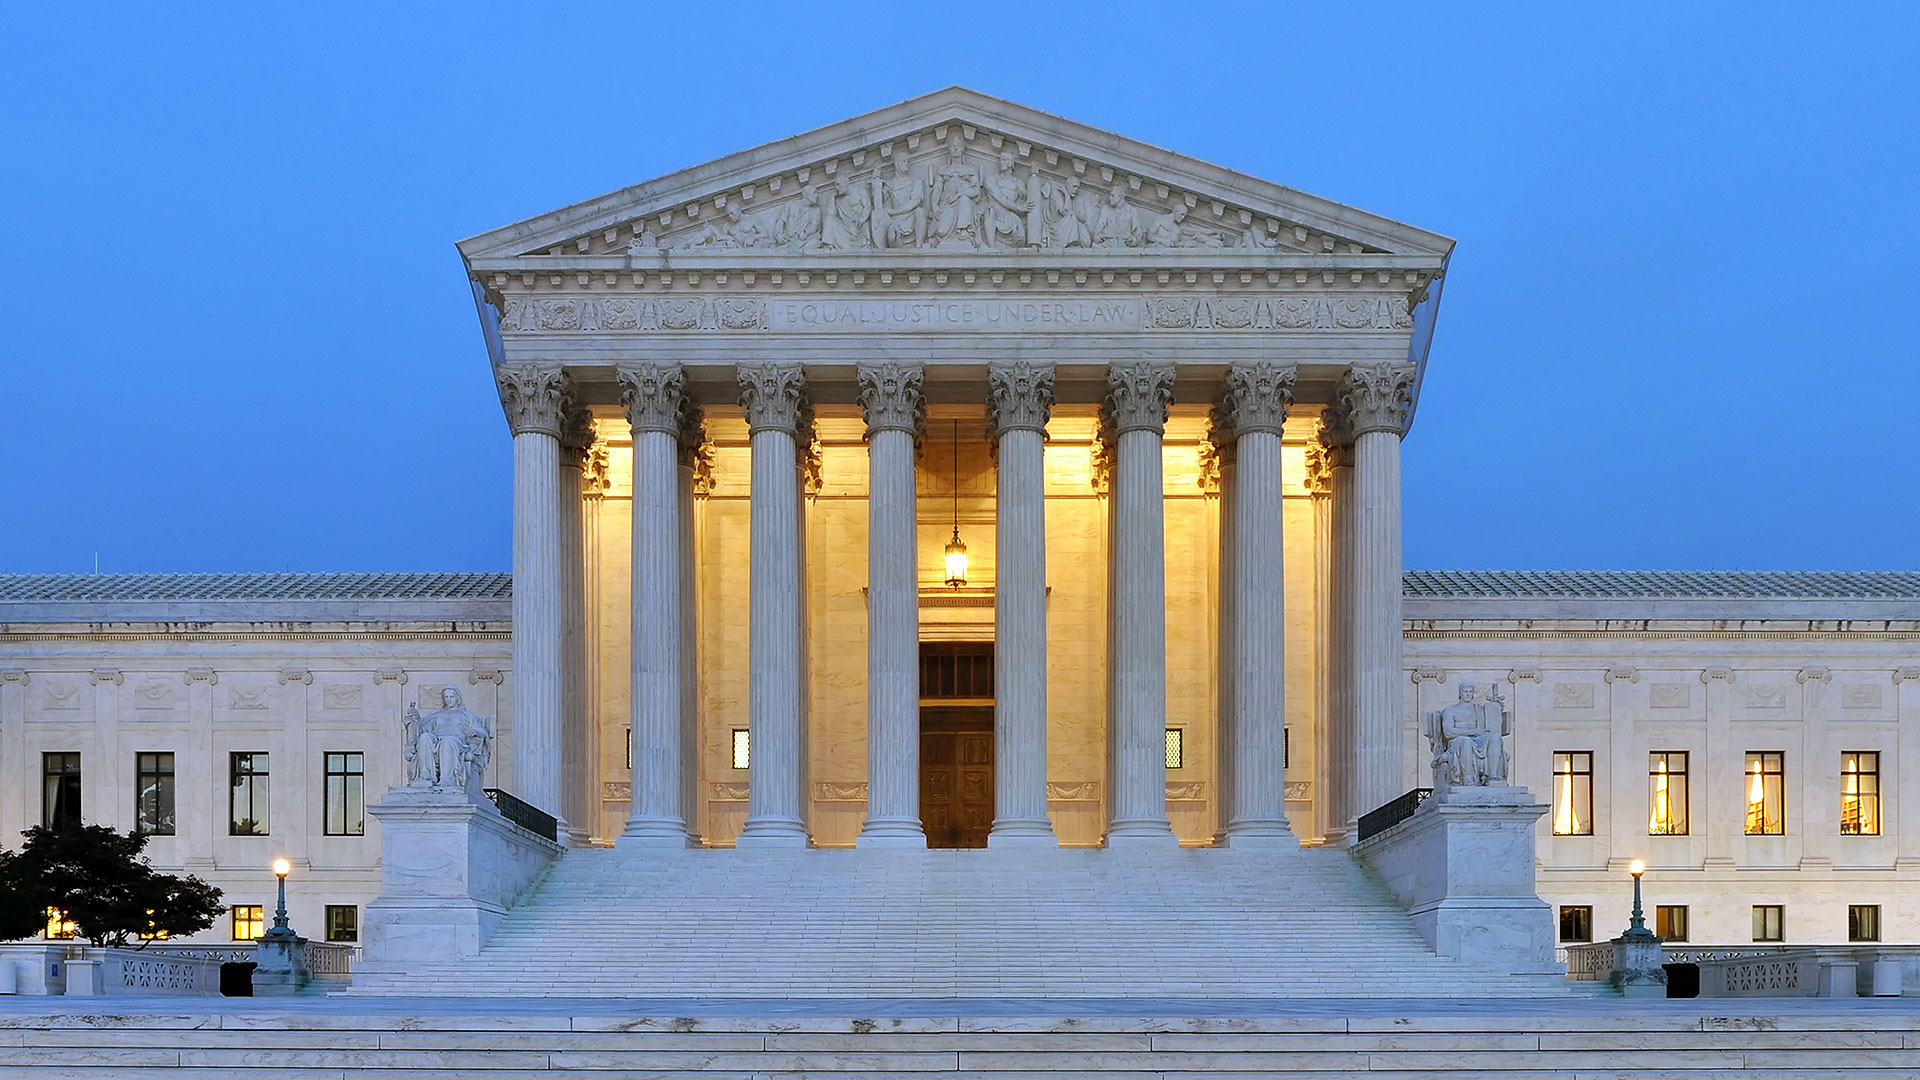 us supreme court Carpenter vs United States